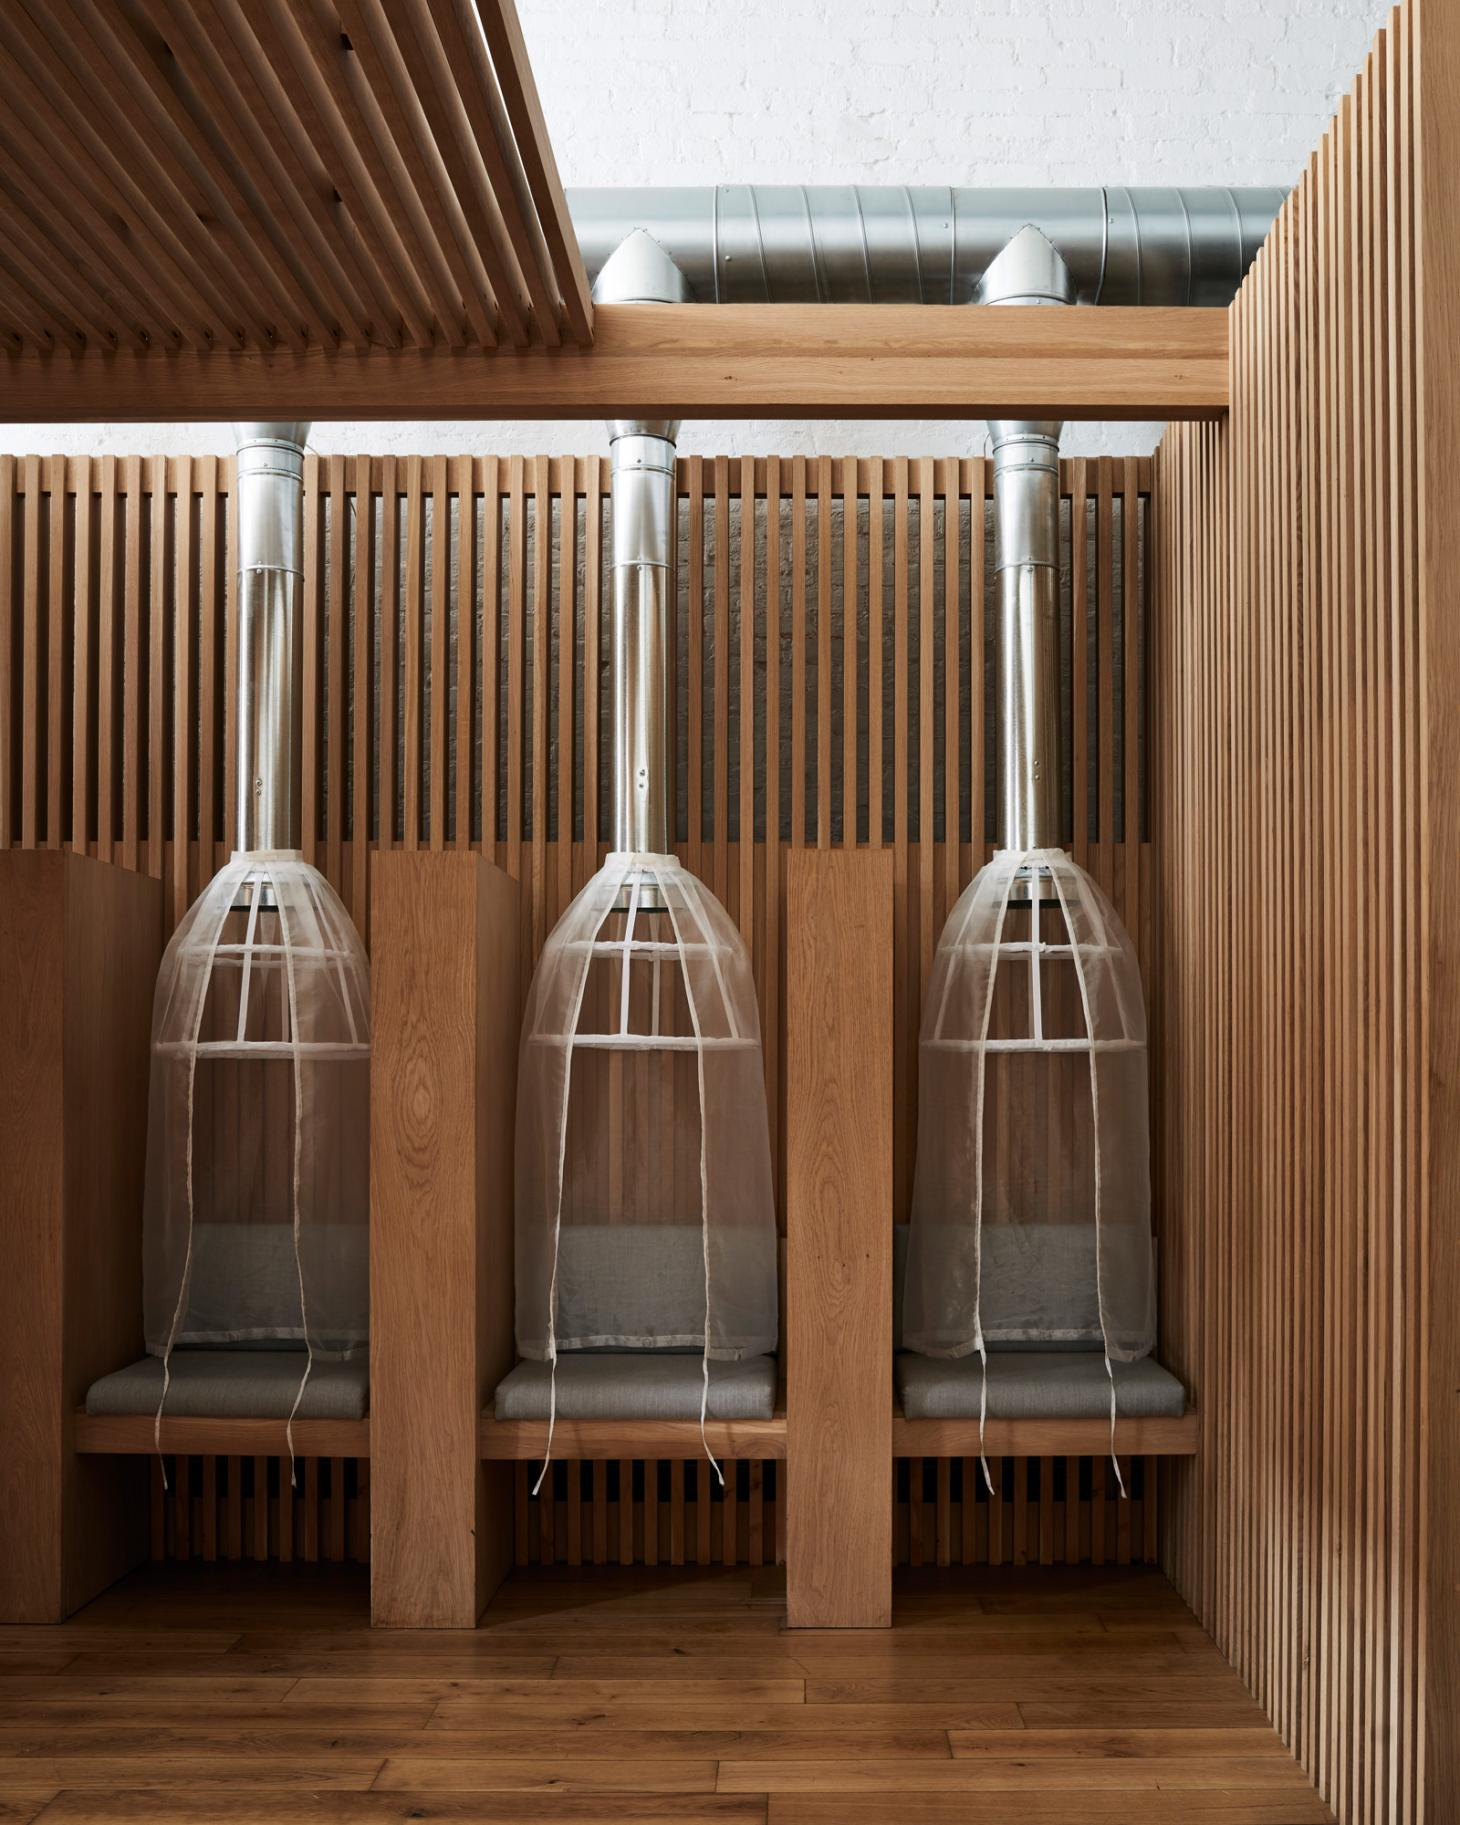 the wood-clad interior of a Tribeca hair salon featuring seating pods with gray cushions